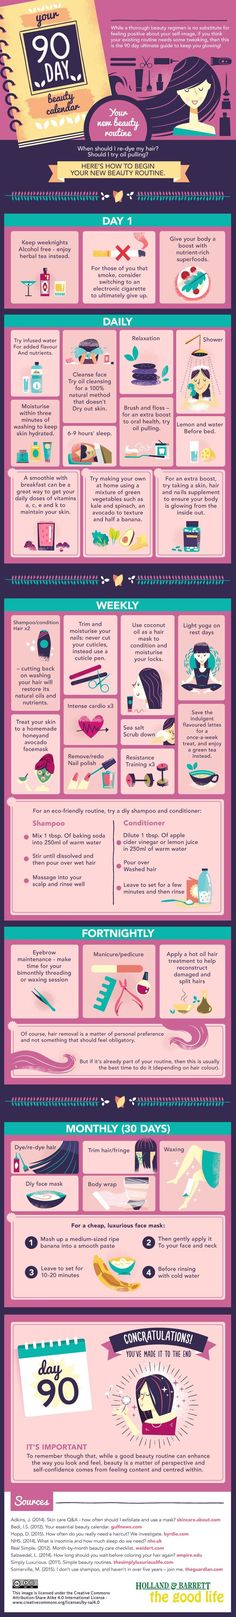 90 day beauty calendar guide. Amazing daily beauty routine to keep you glowing